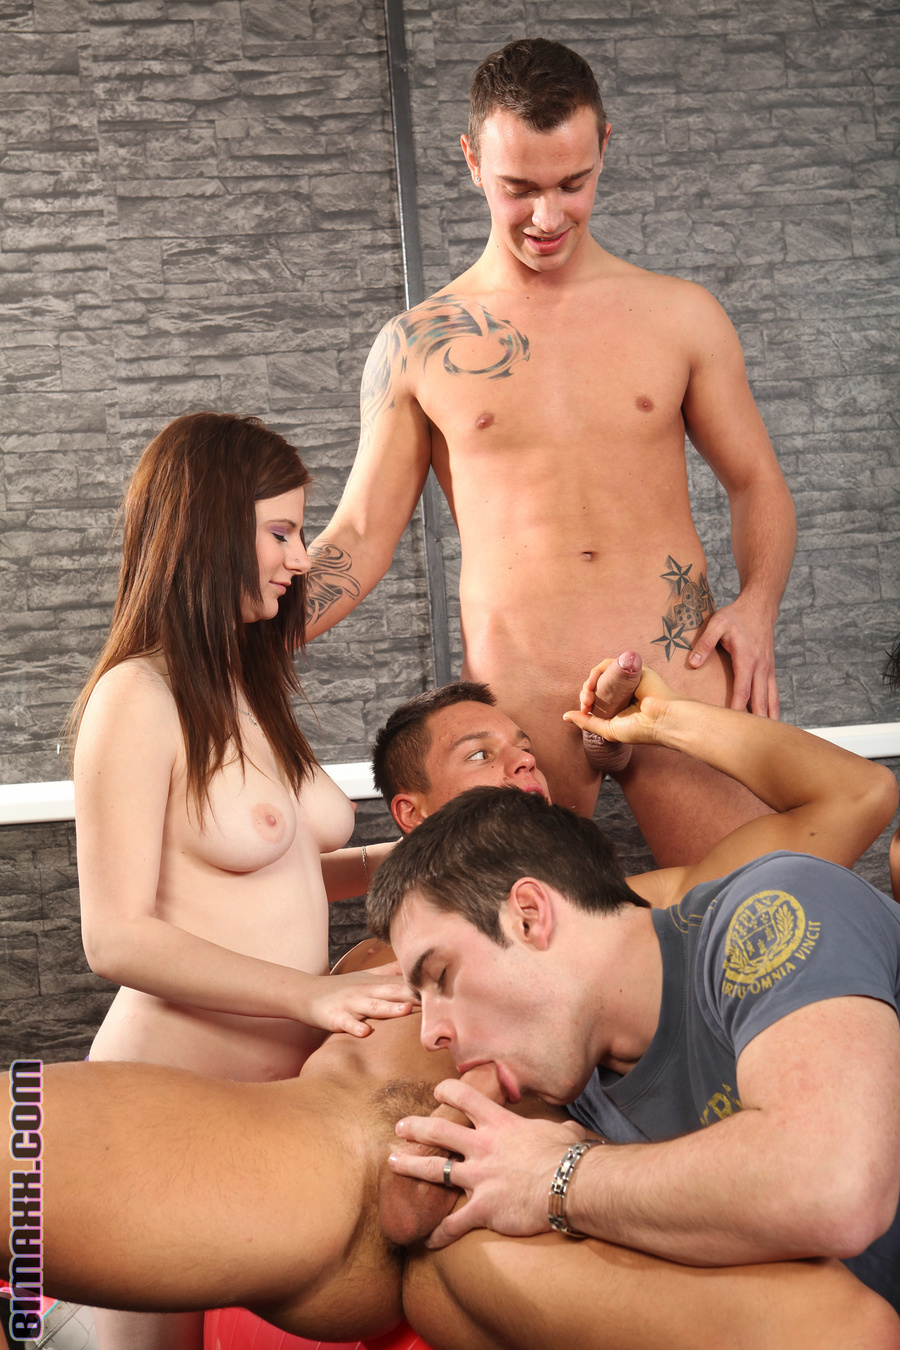 Nasty Bisexual Teens Have Awesome Group Sex - Xxx Dessert -1985